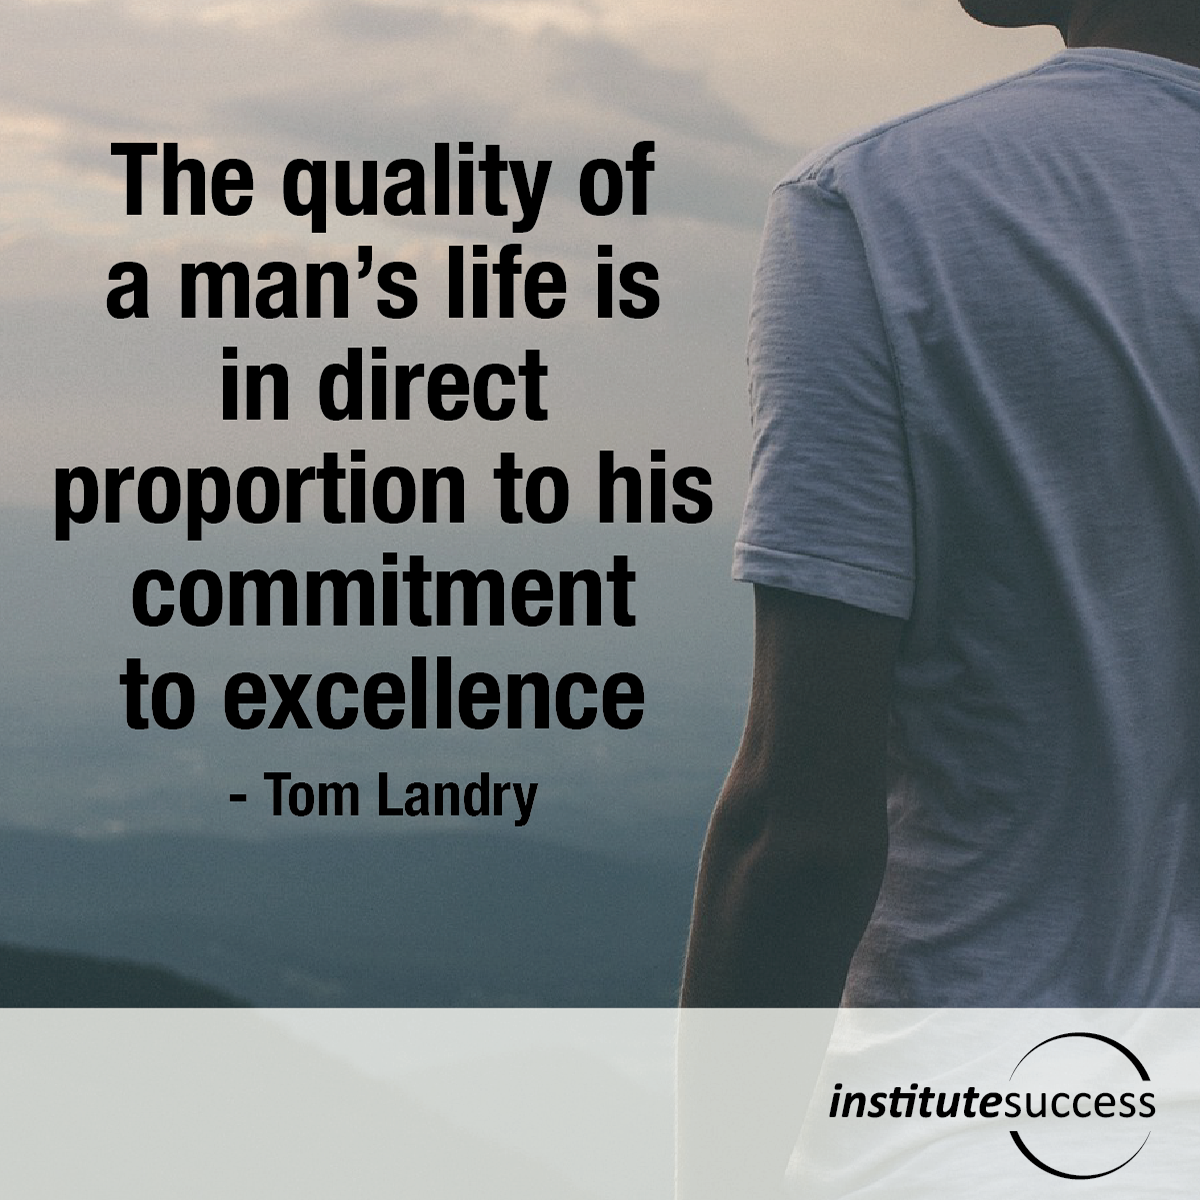 The quality of a man's life is in direct proportion to his commitment to excellence – Tom Landry